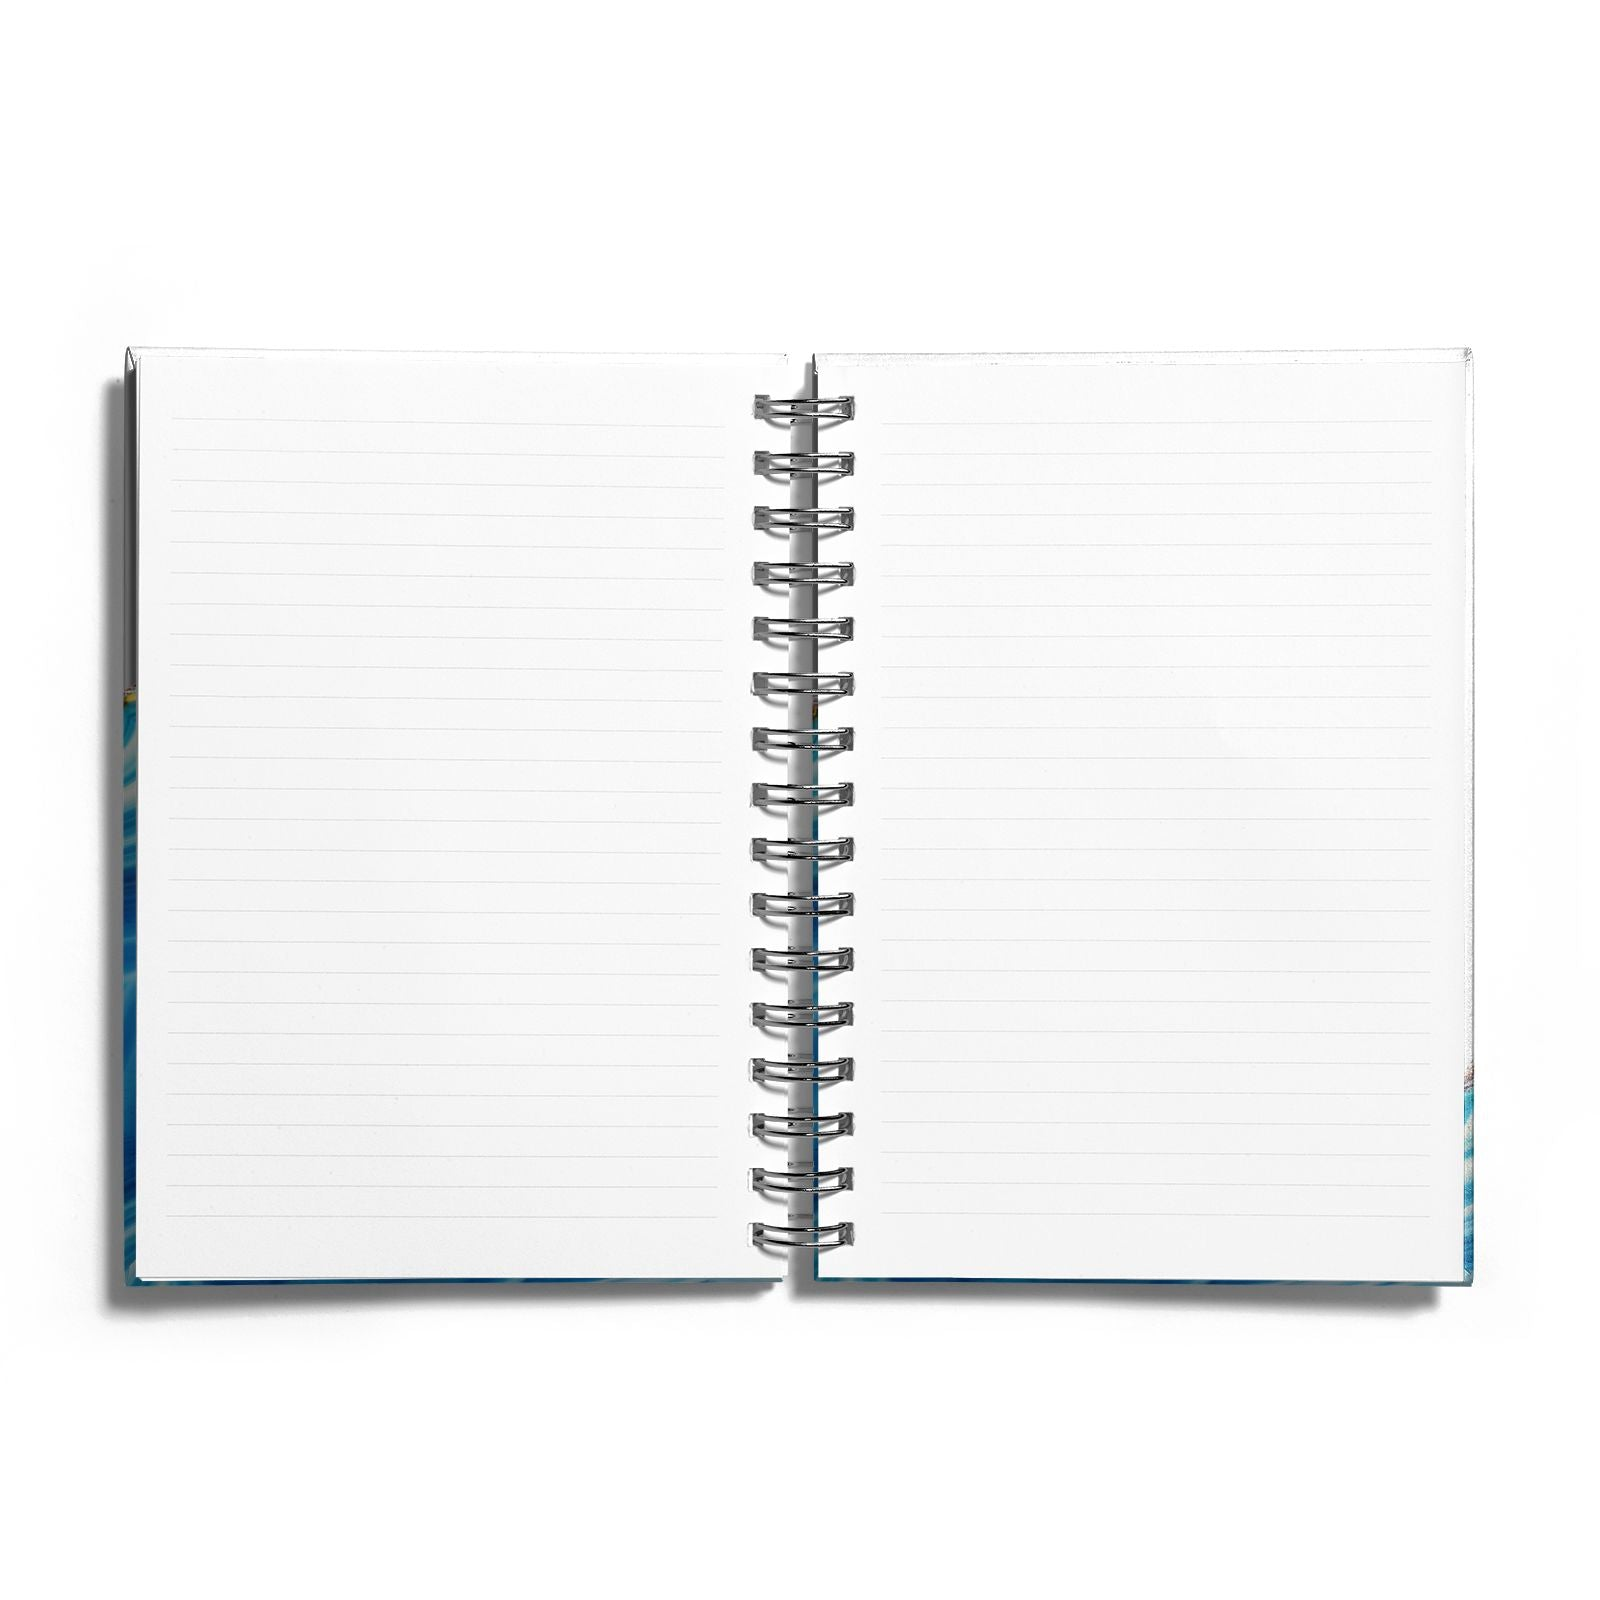 Agate Pale Blue and Bright Blue Notebook with Silver Coil and Lined Paper